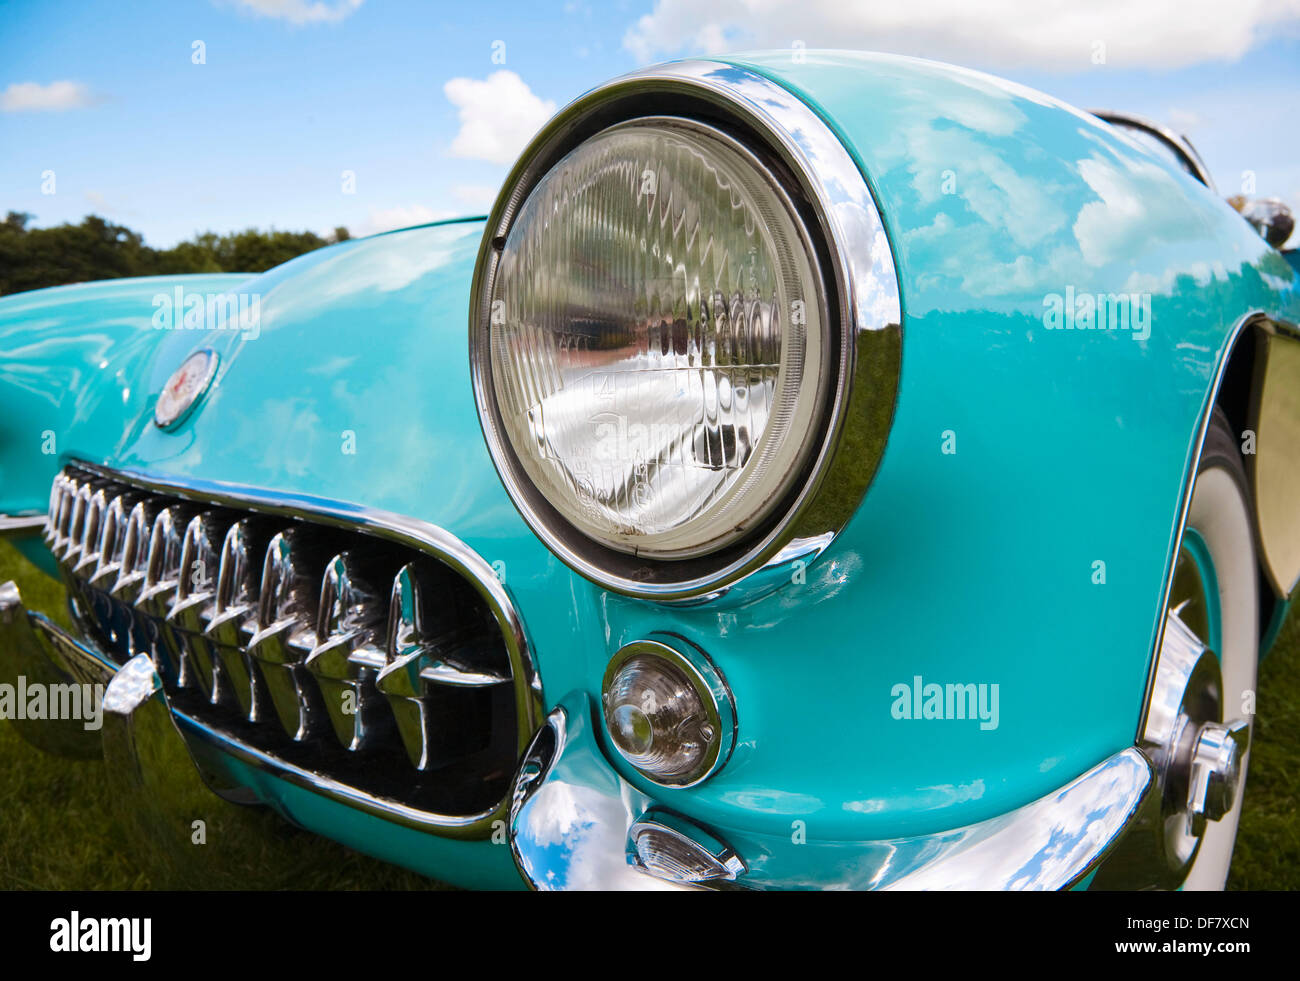 Front wing and headlamp from a 1956 Chevrolet Corvette C1 - Stock Image